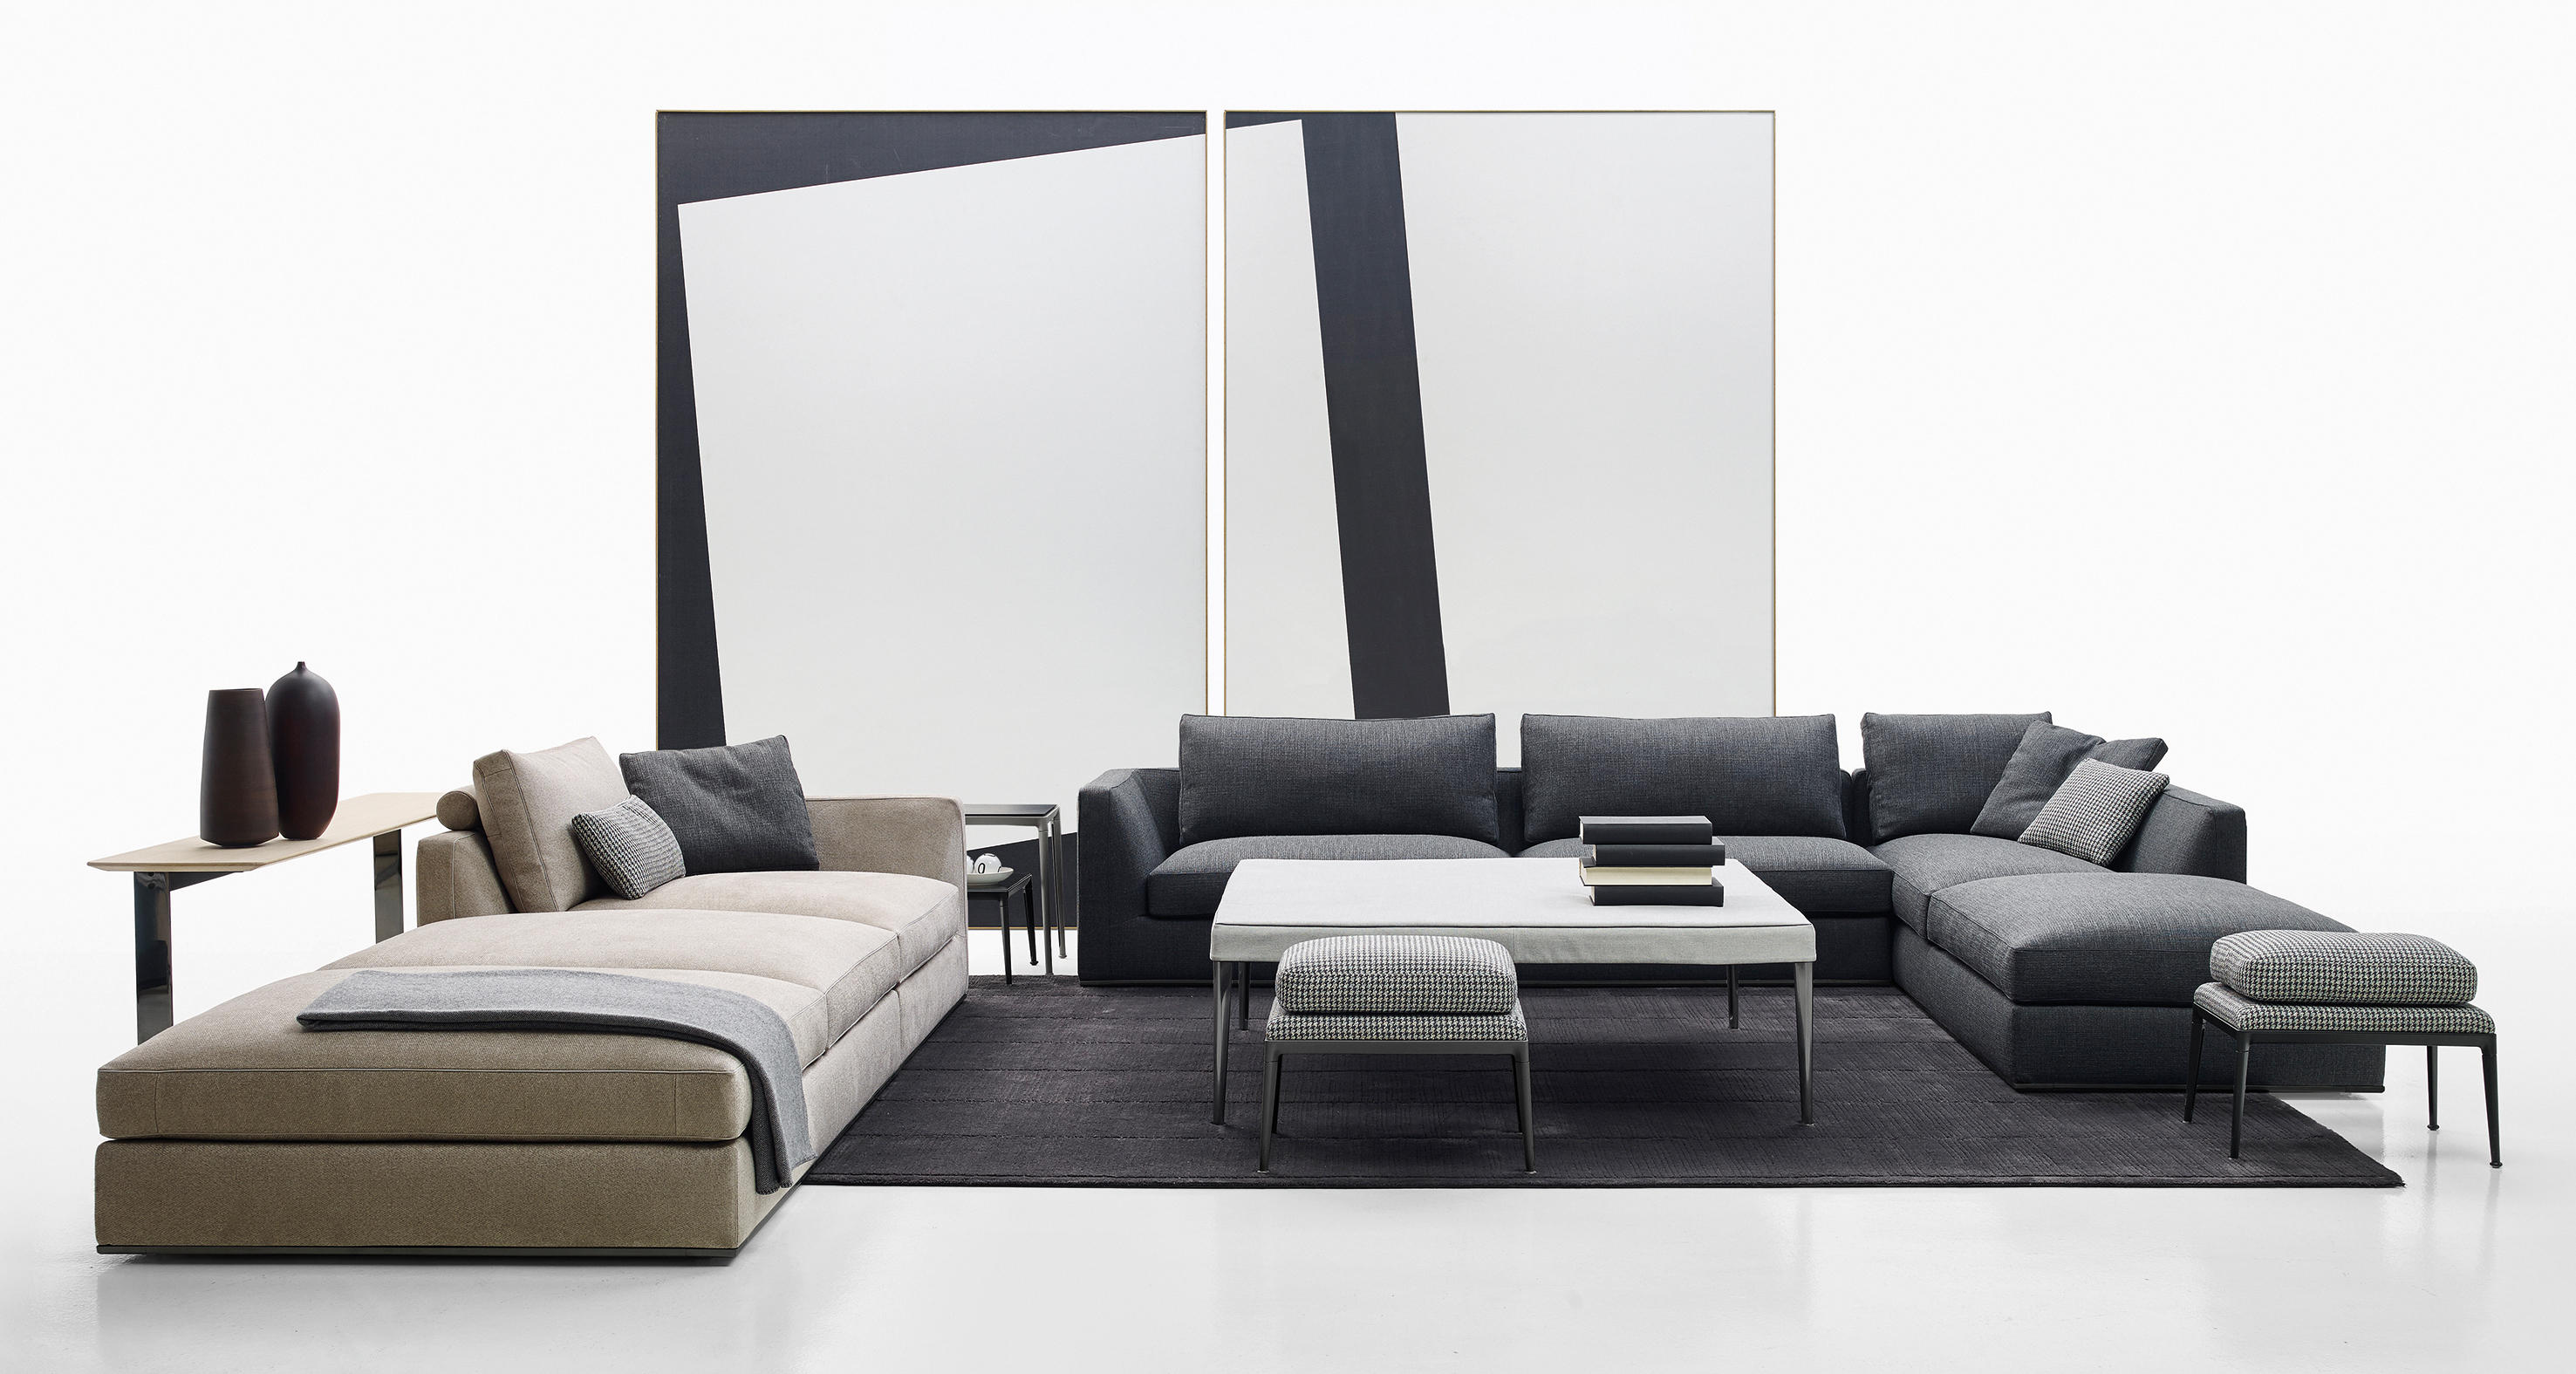 Richard sofa sofas from b b italia architonic for B b couch